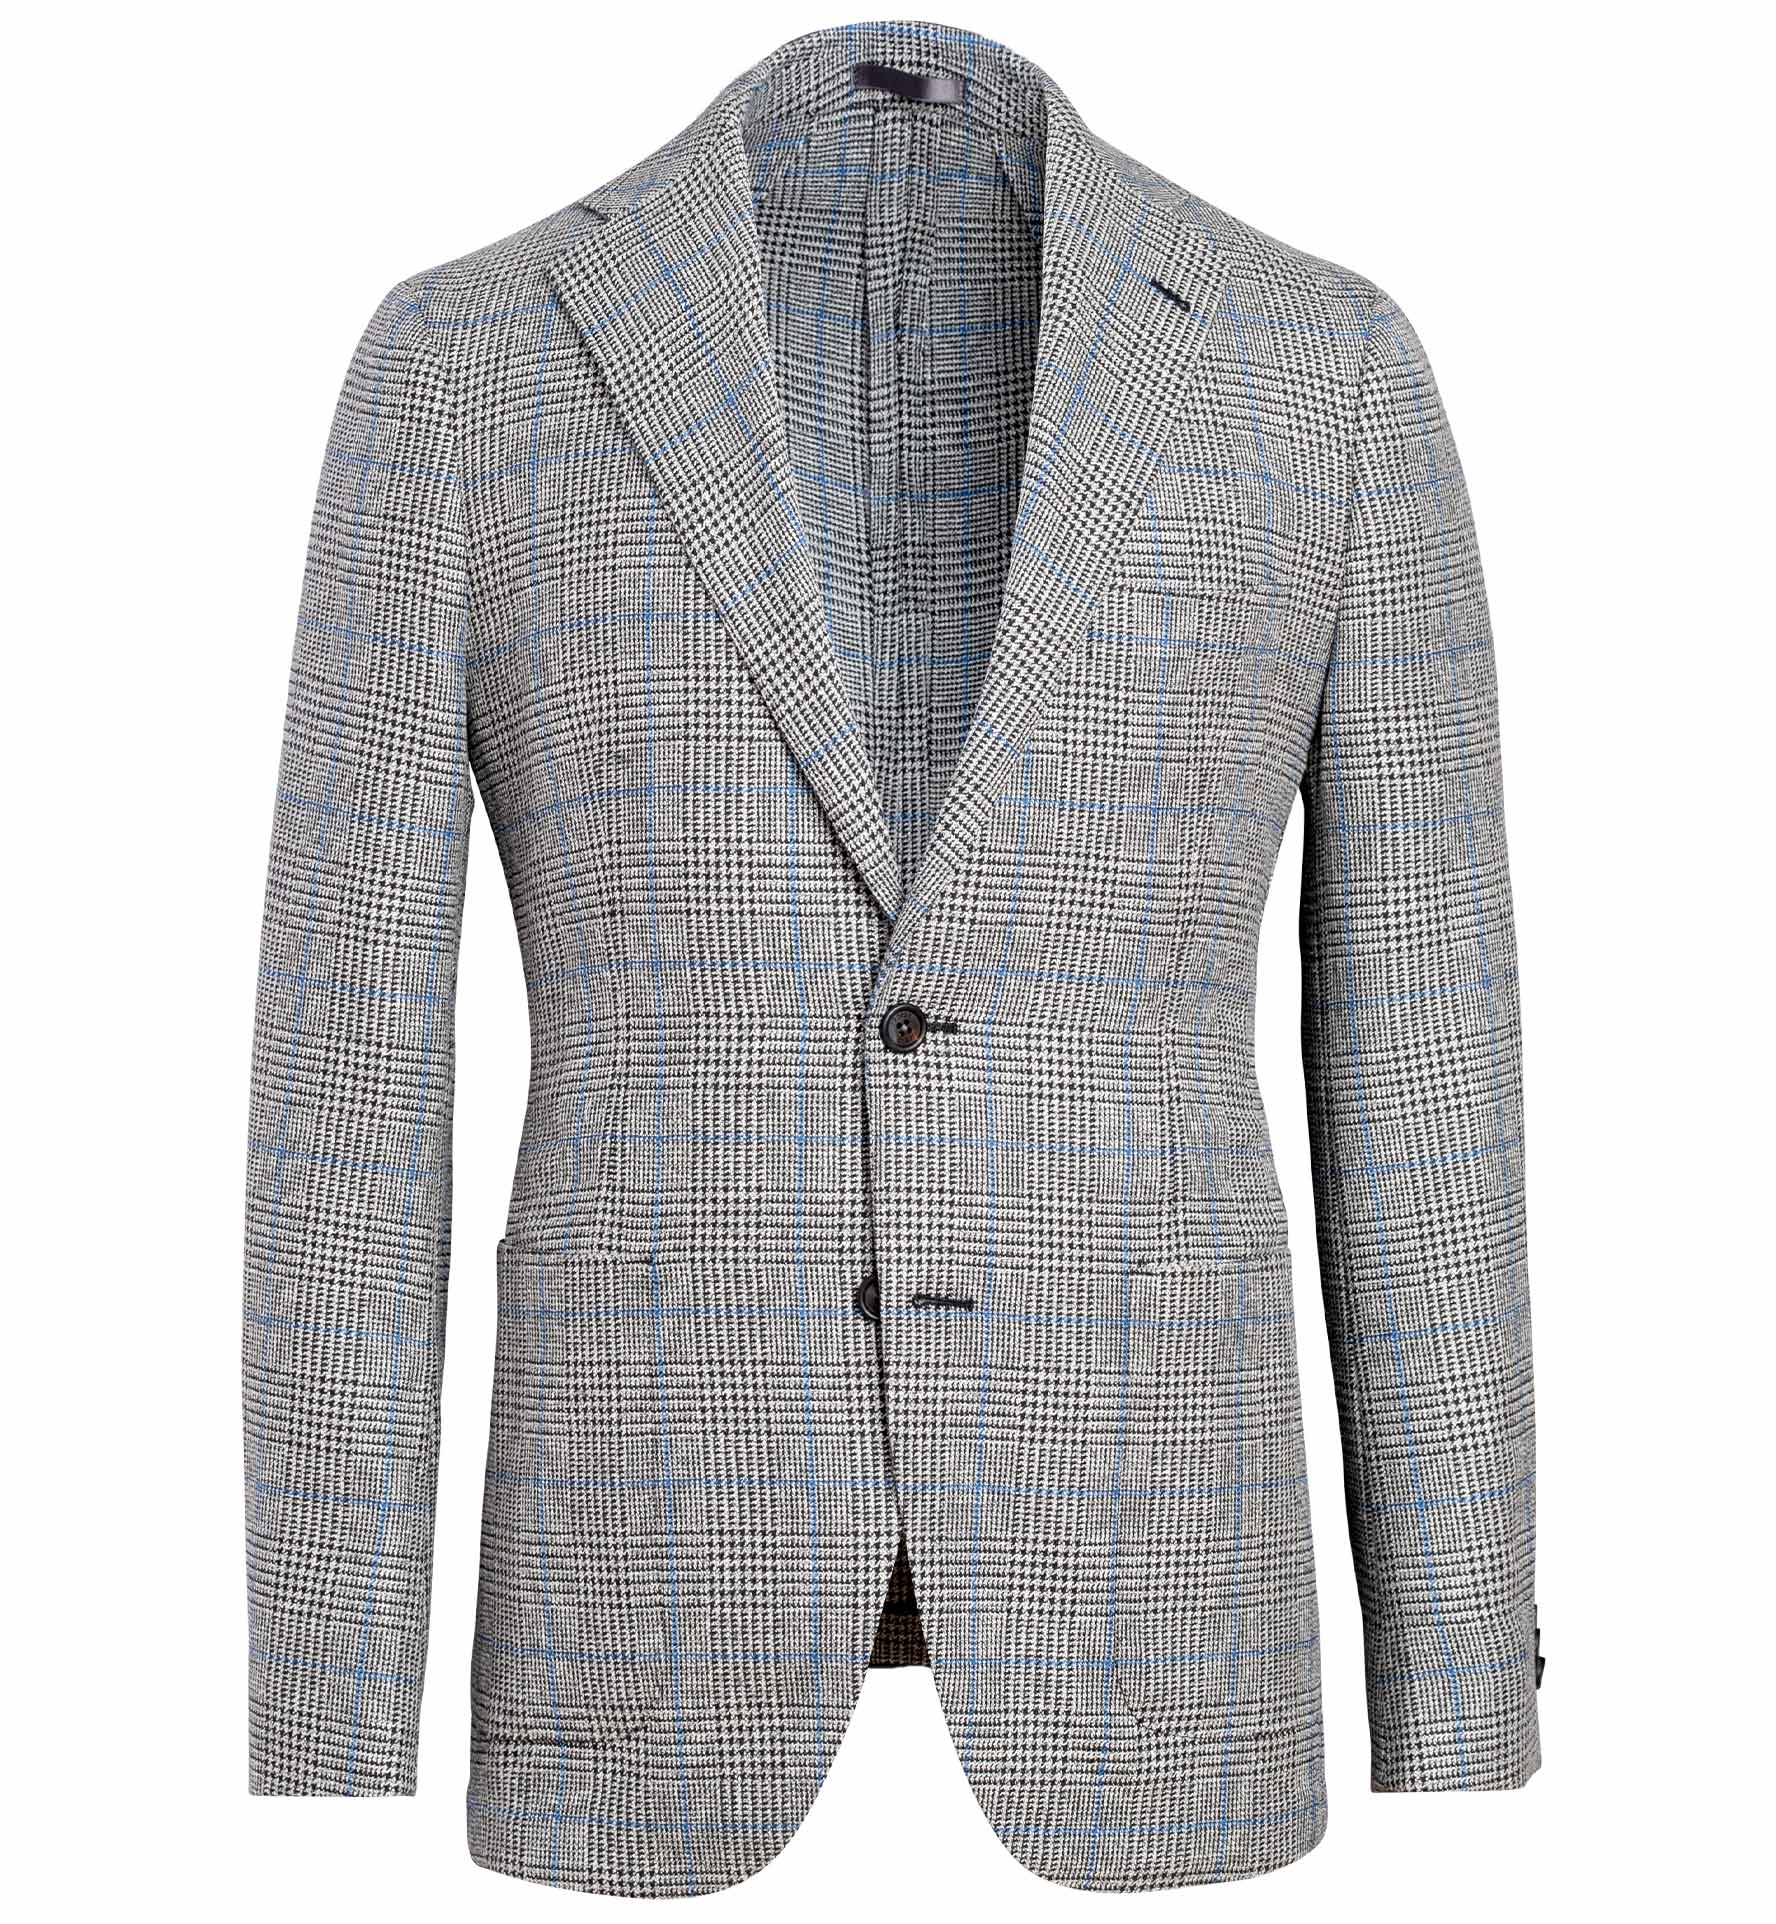 Zoom Image of Bedford Grey and Blue Prince of Wales Check Jacket